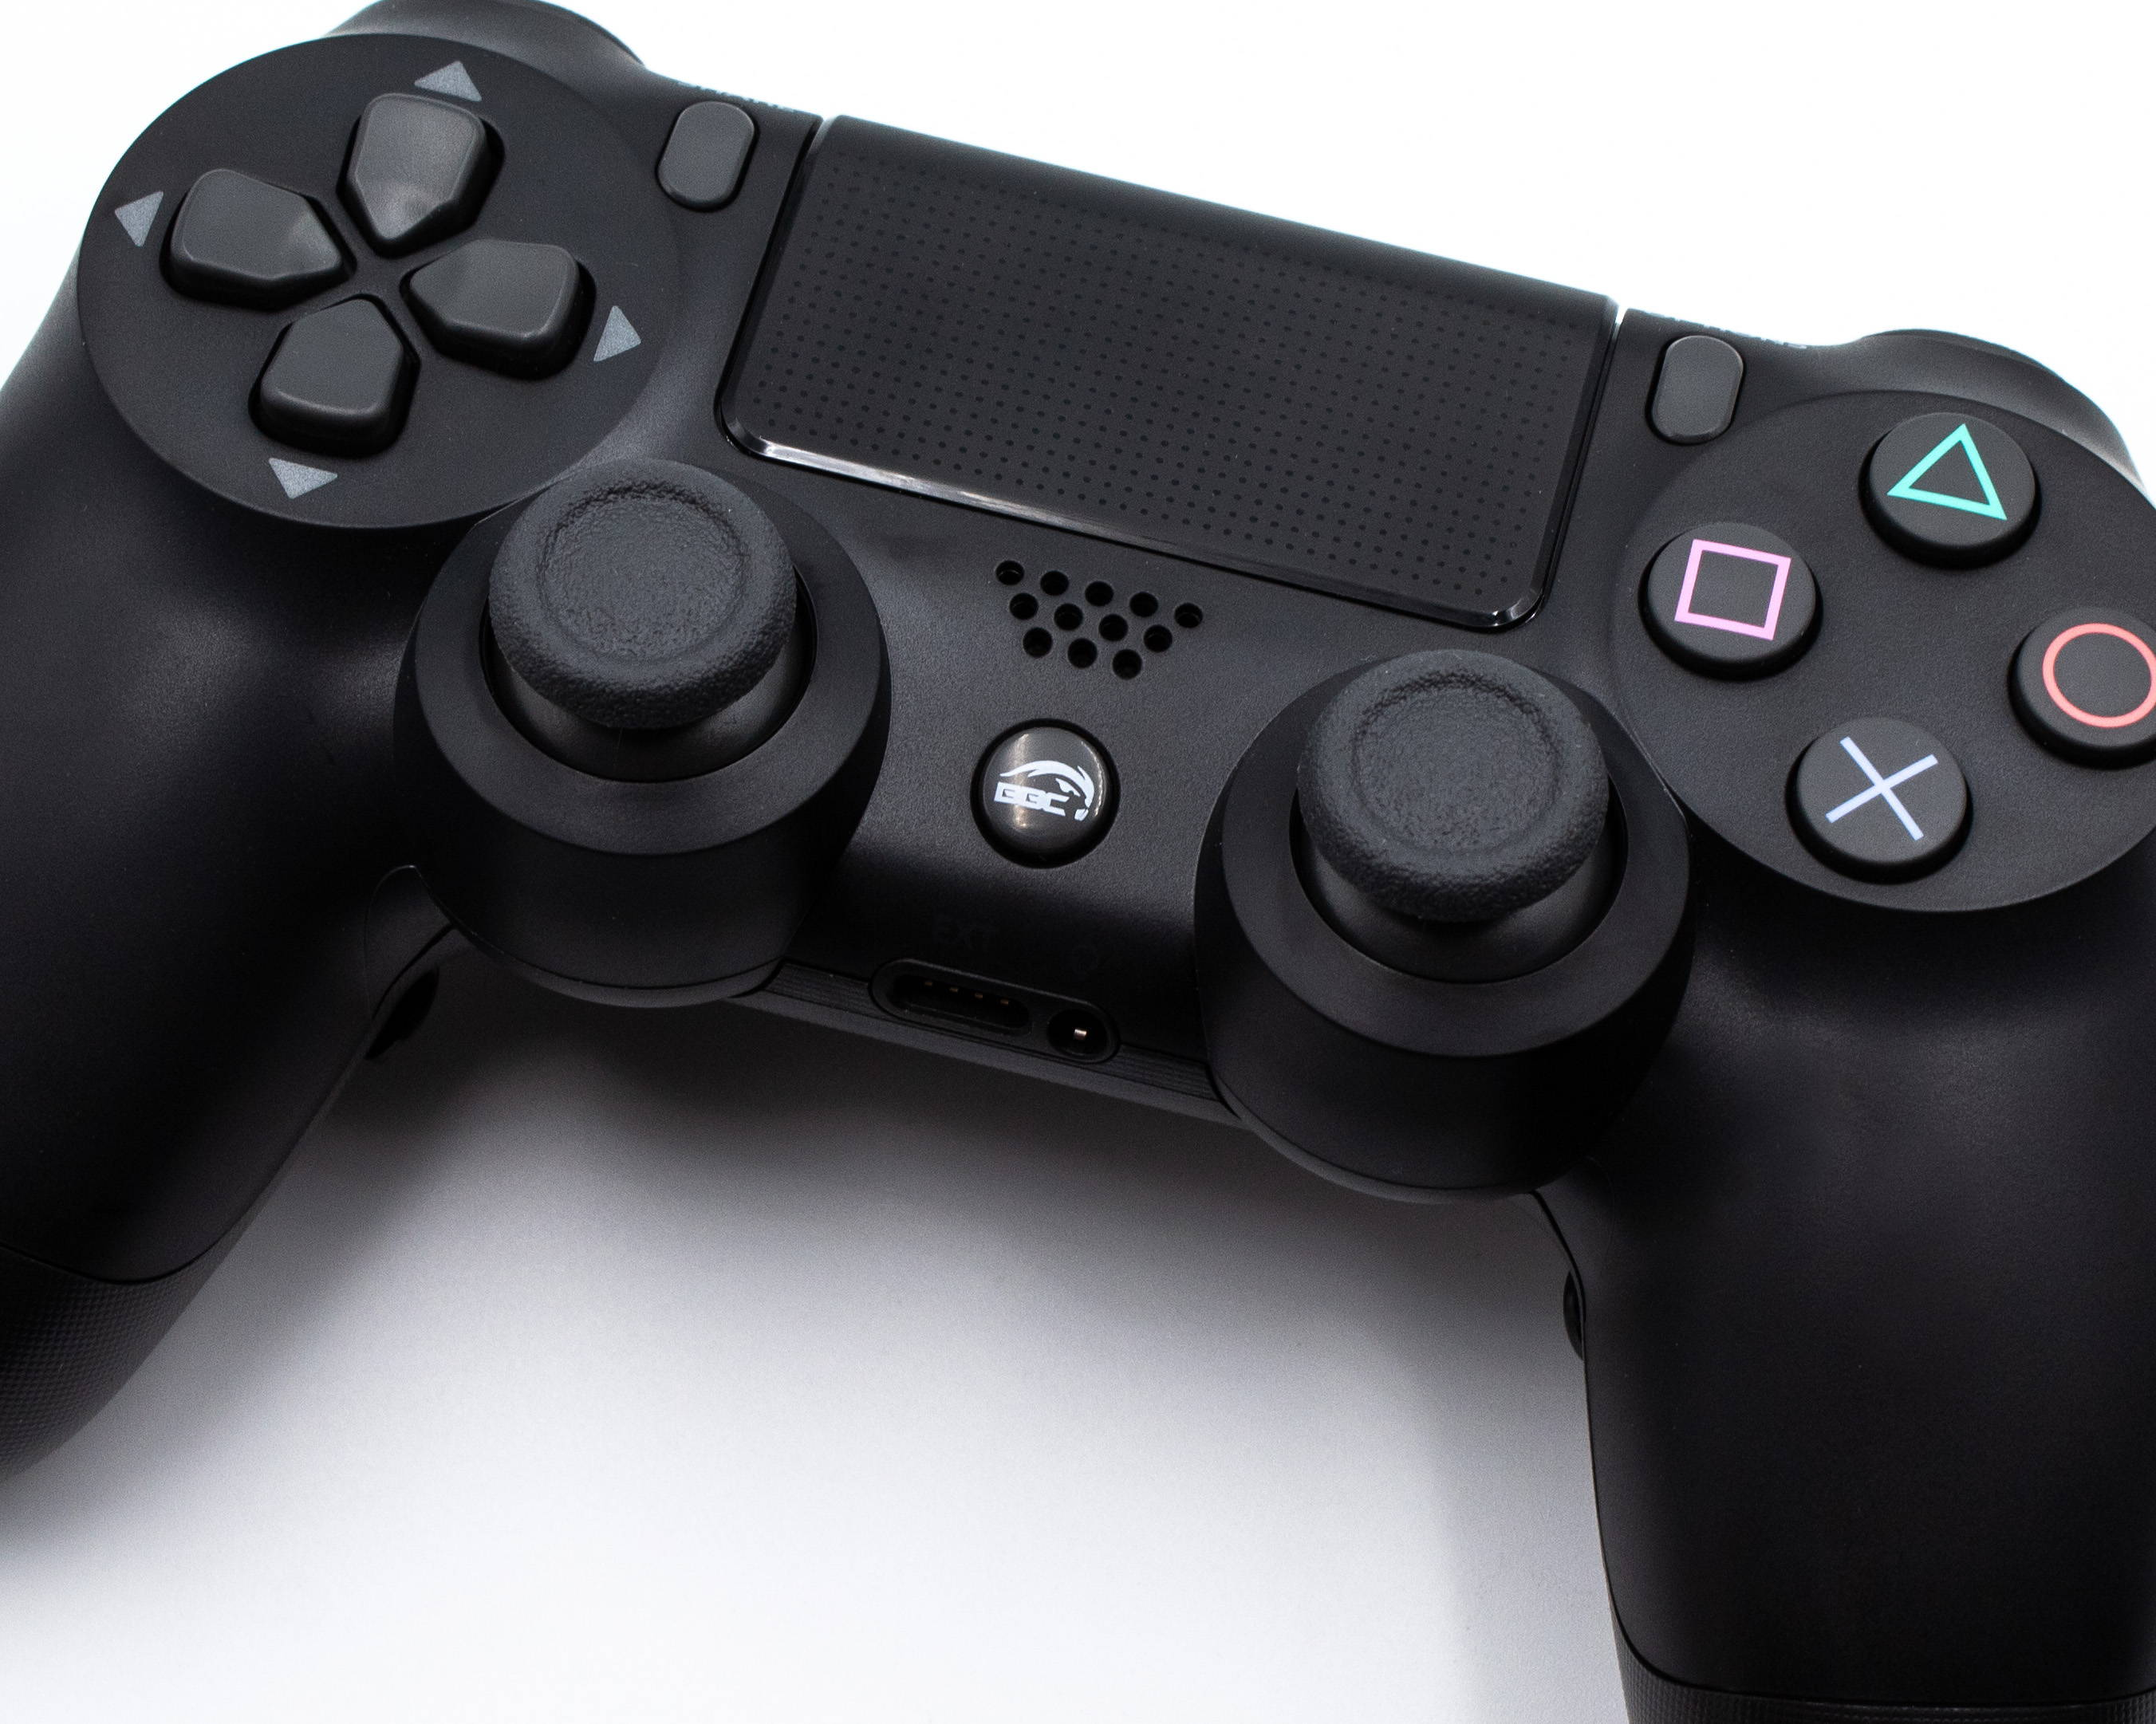 BBC Playstation 4 Performance Controller